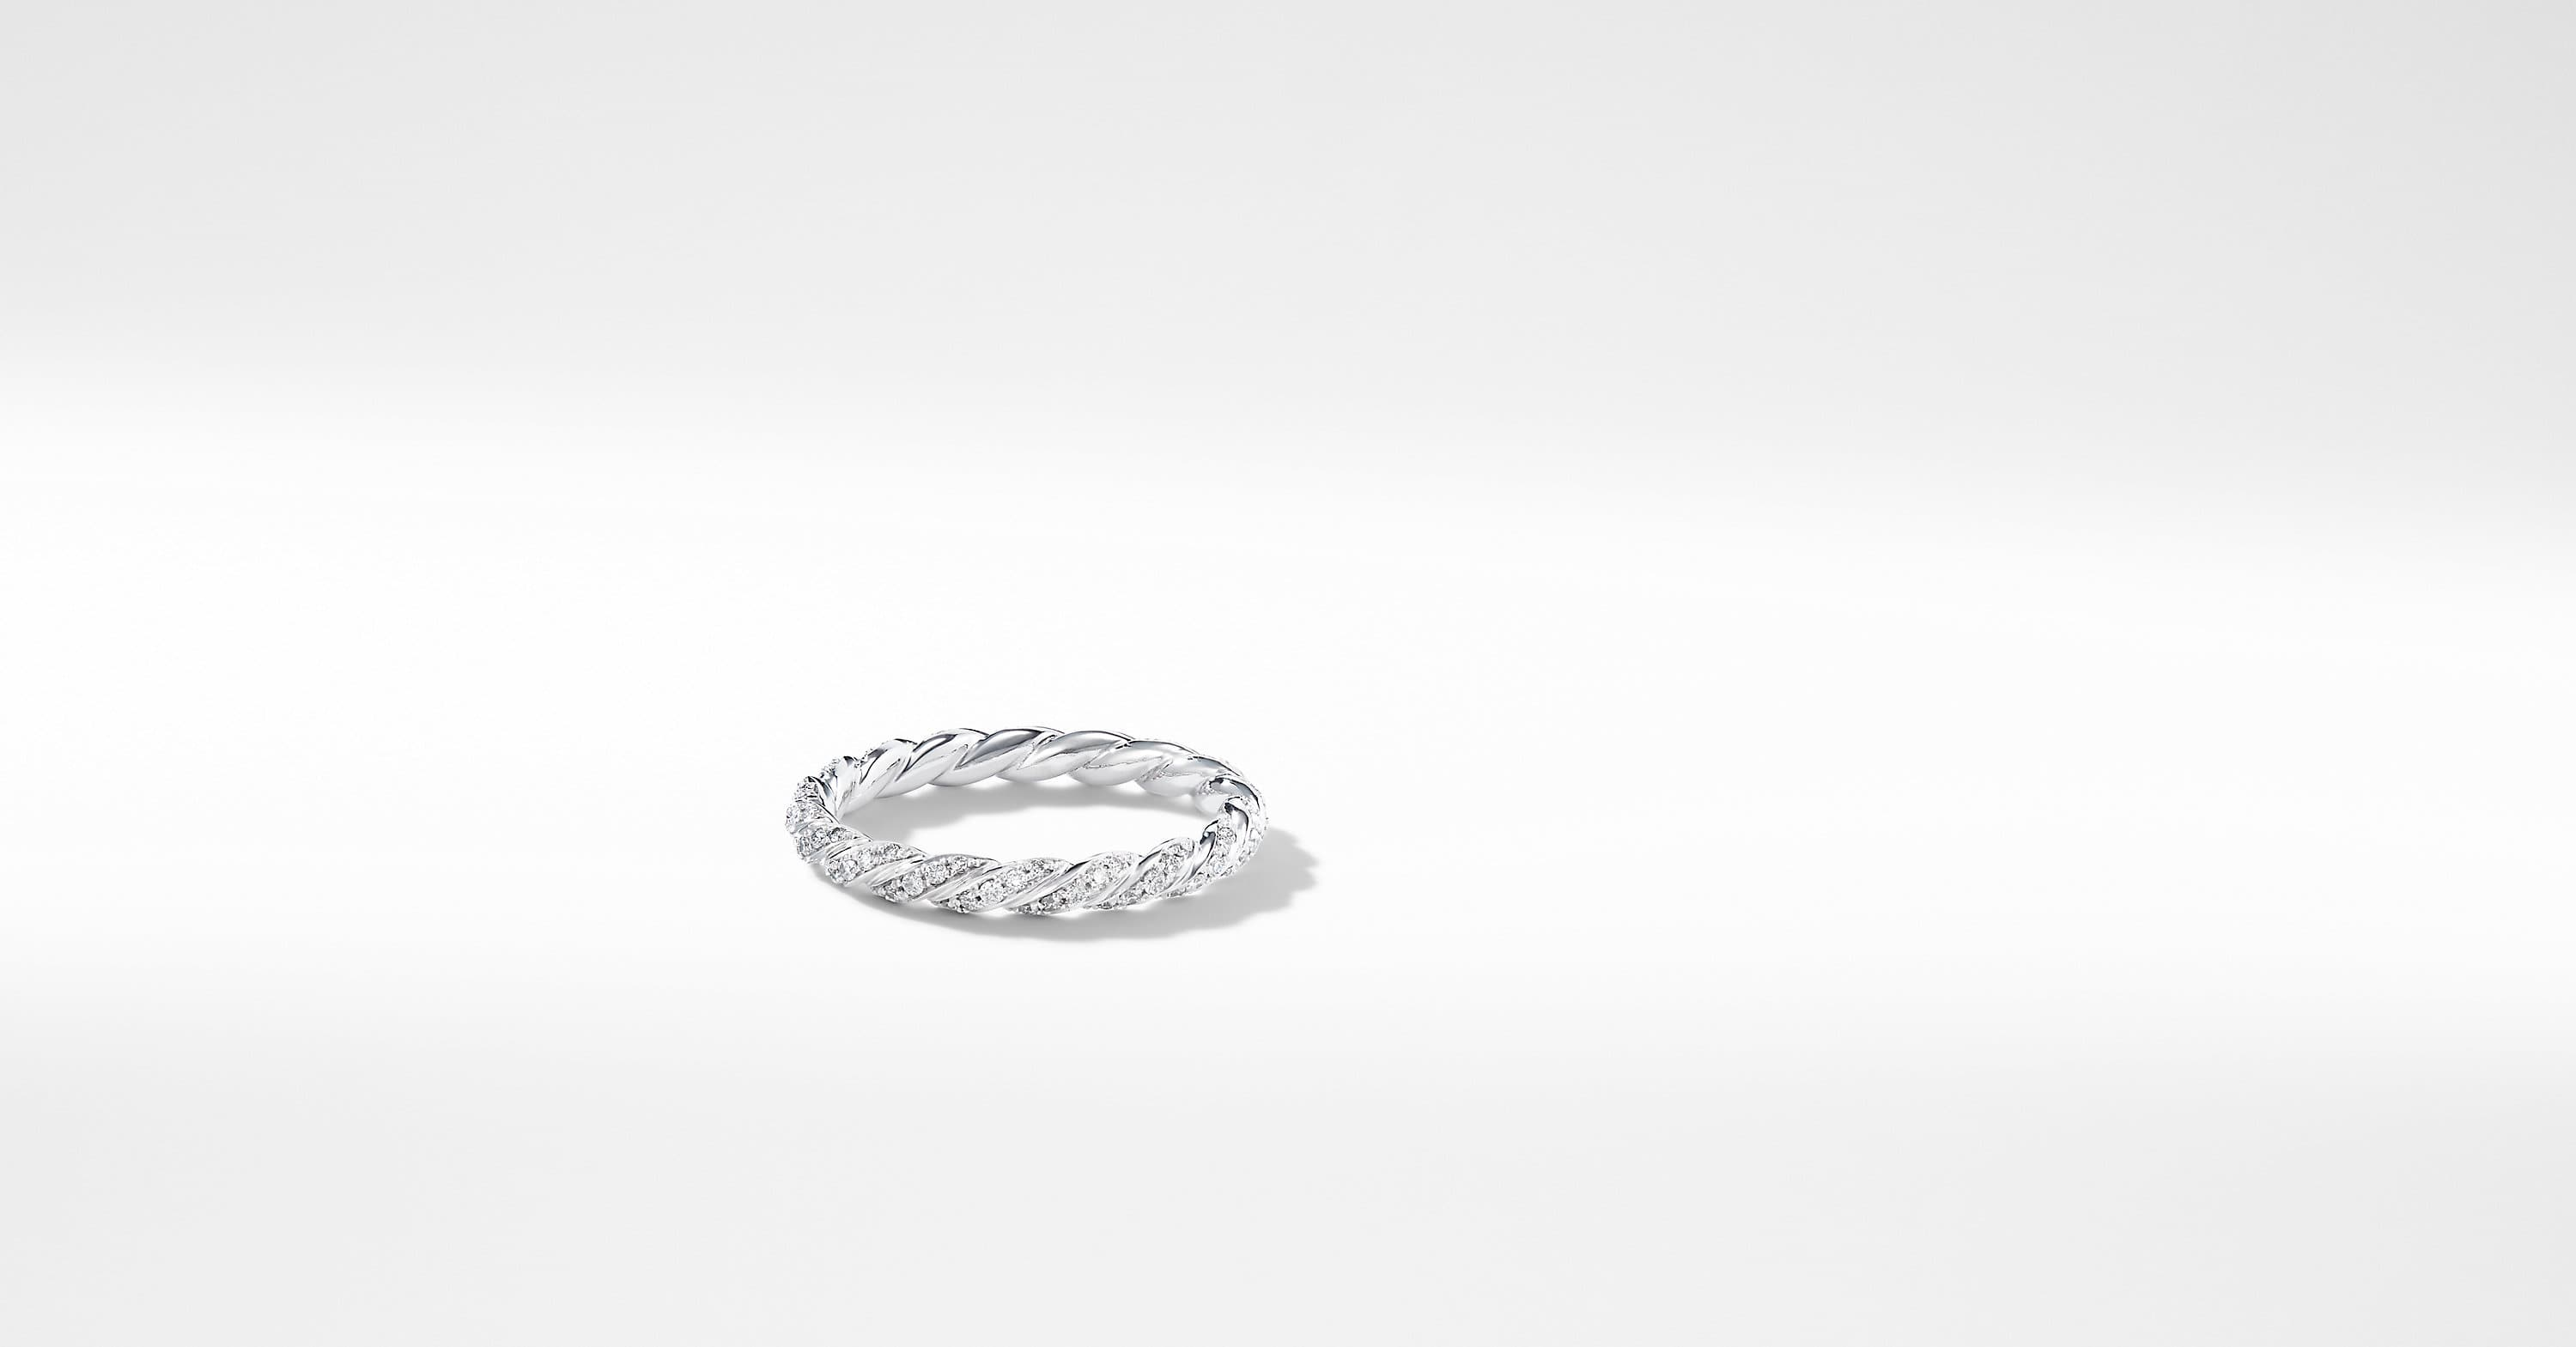 Bague Paveflex en or blanc 18K avec diamants